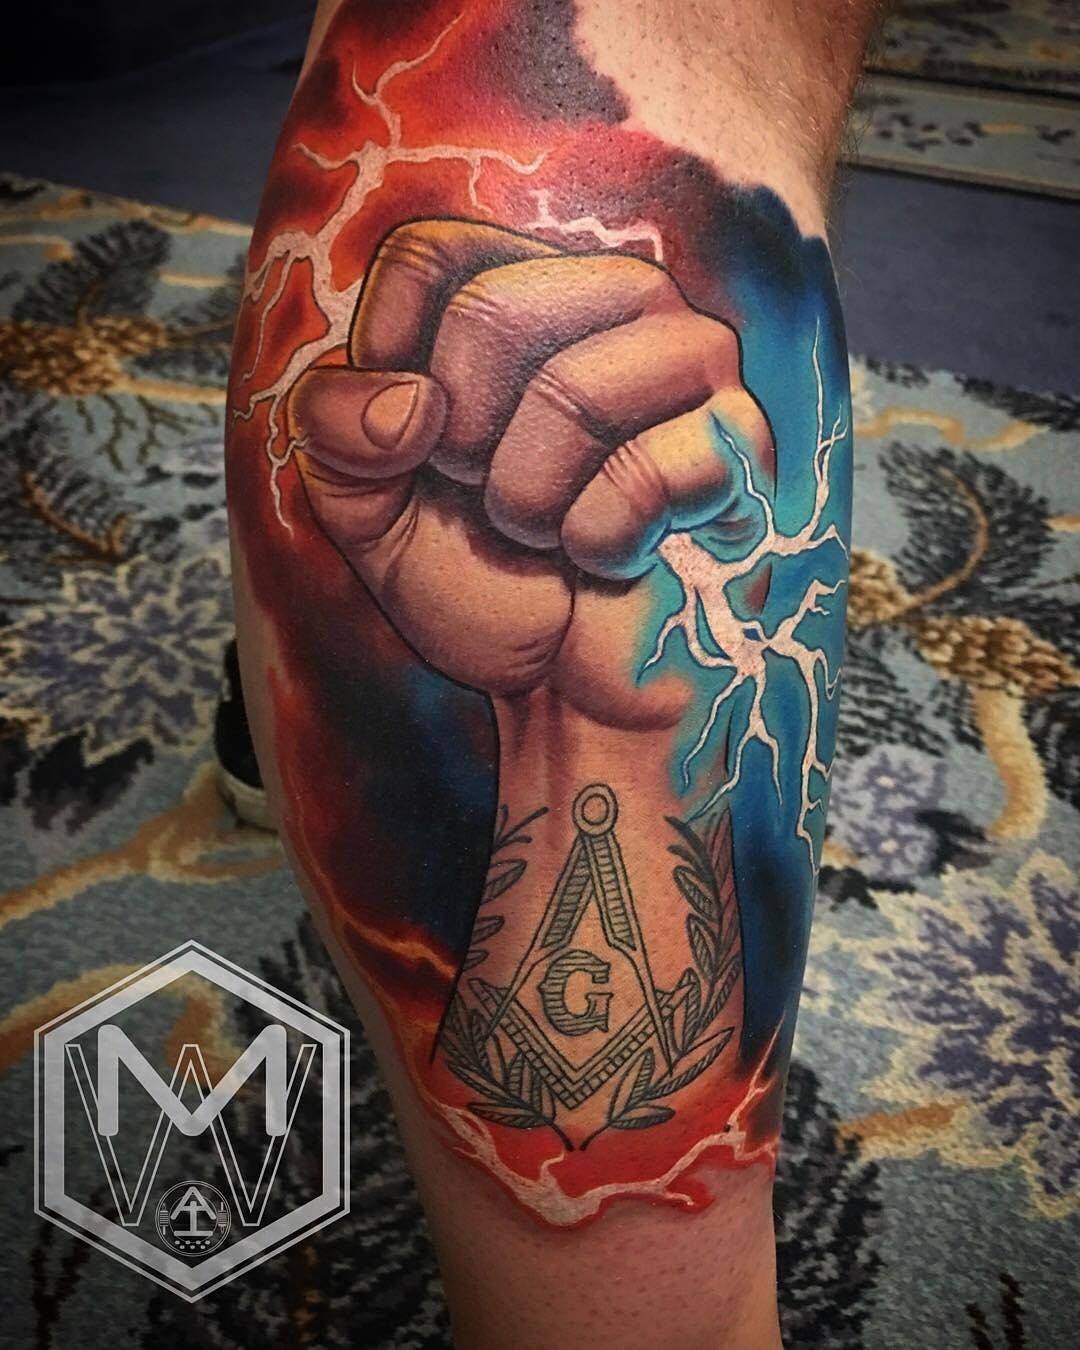 Fistful of lightning by mikewoodsart at advent tattoo in